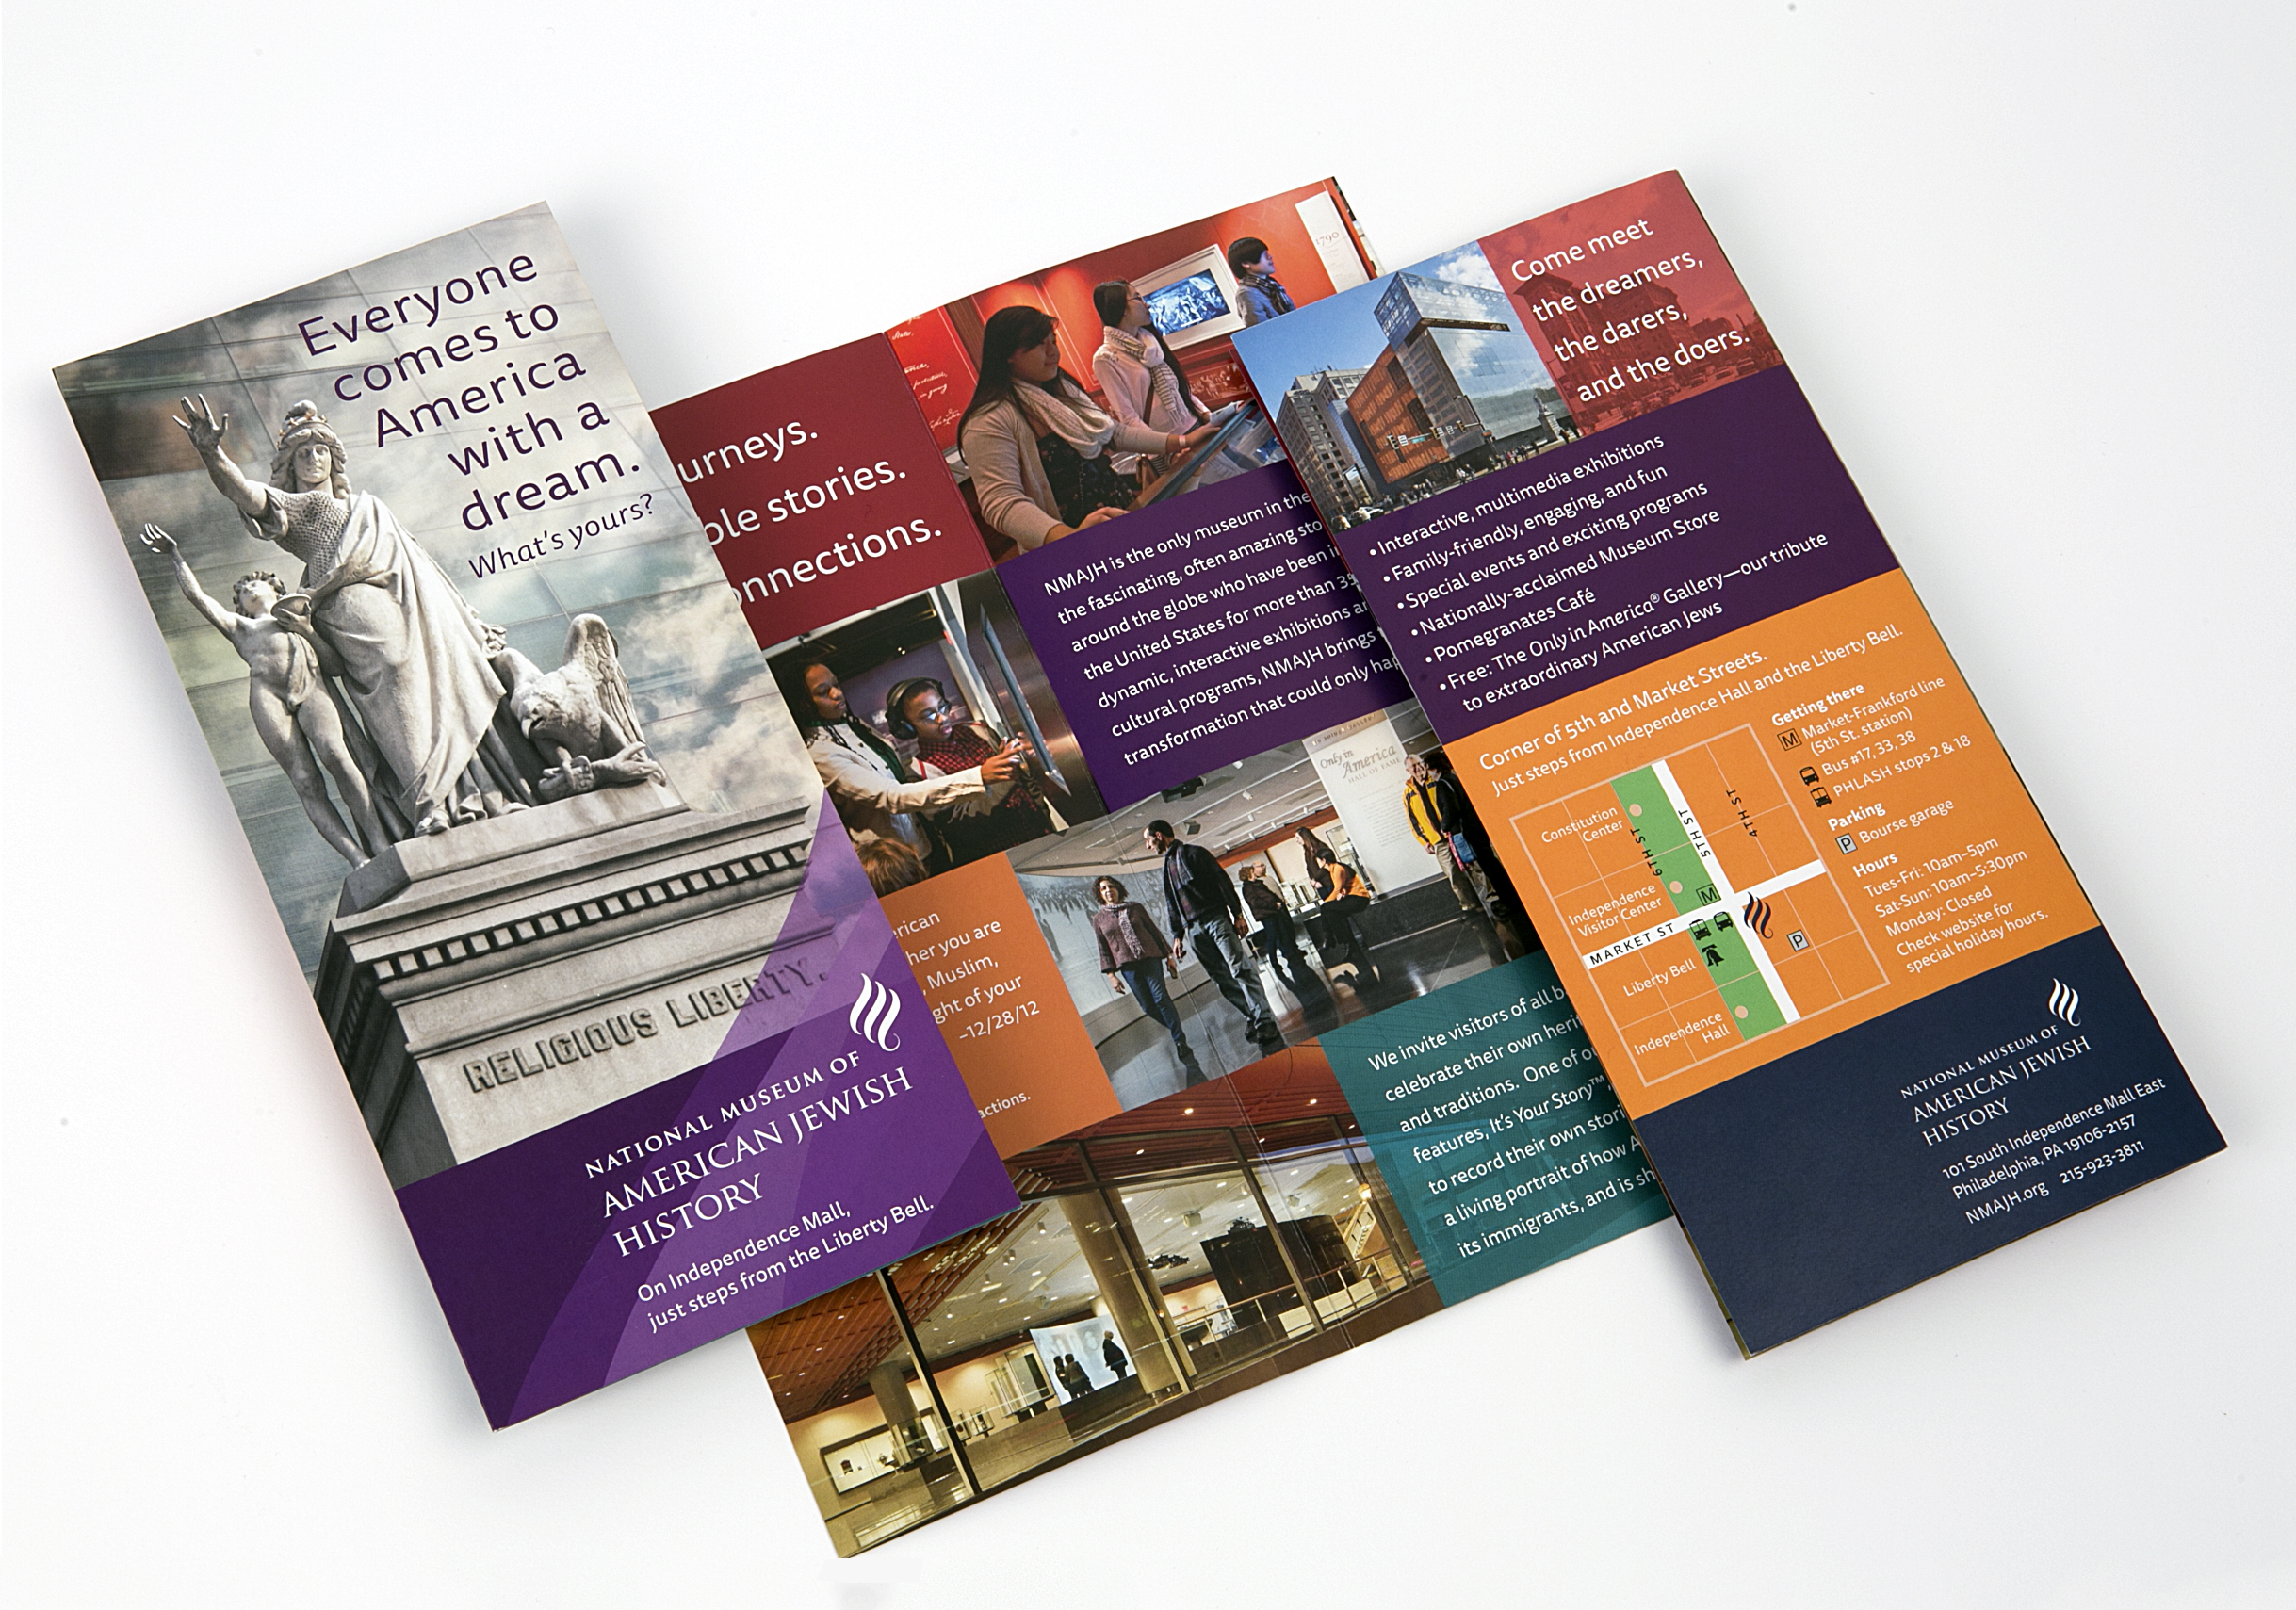 Philadelphia Tourist Board rack cards feature the new color palette, photography program and editorial voice to invite broader audiences to this American history destination.